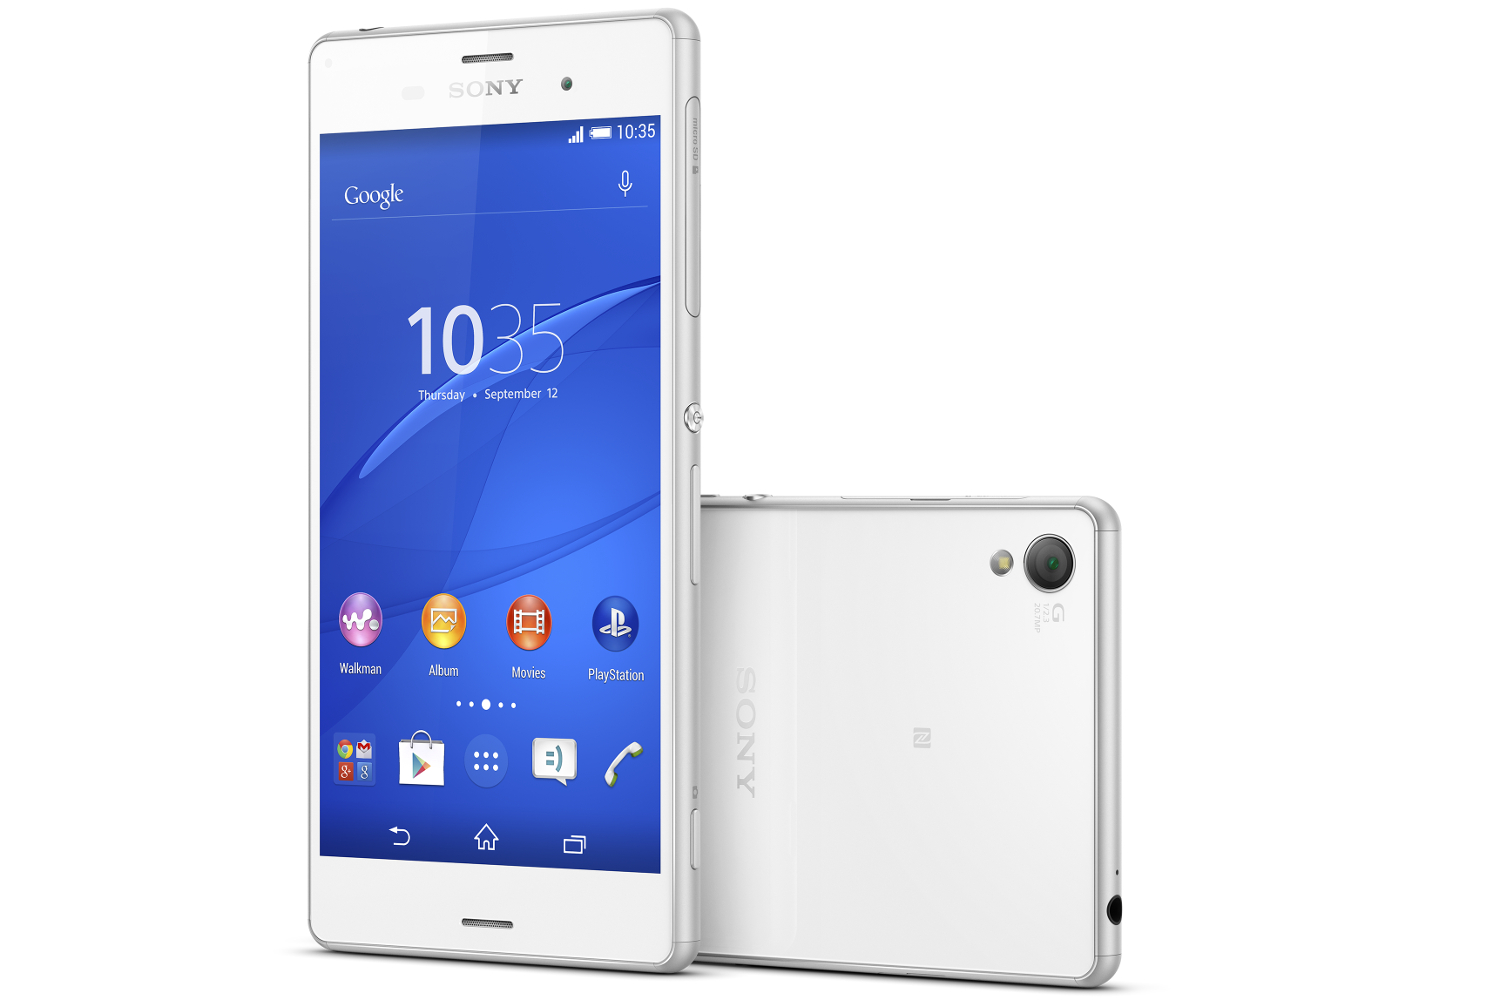 Sony Xperia Z3 and Z3 Compact